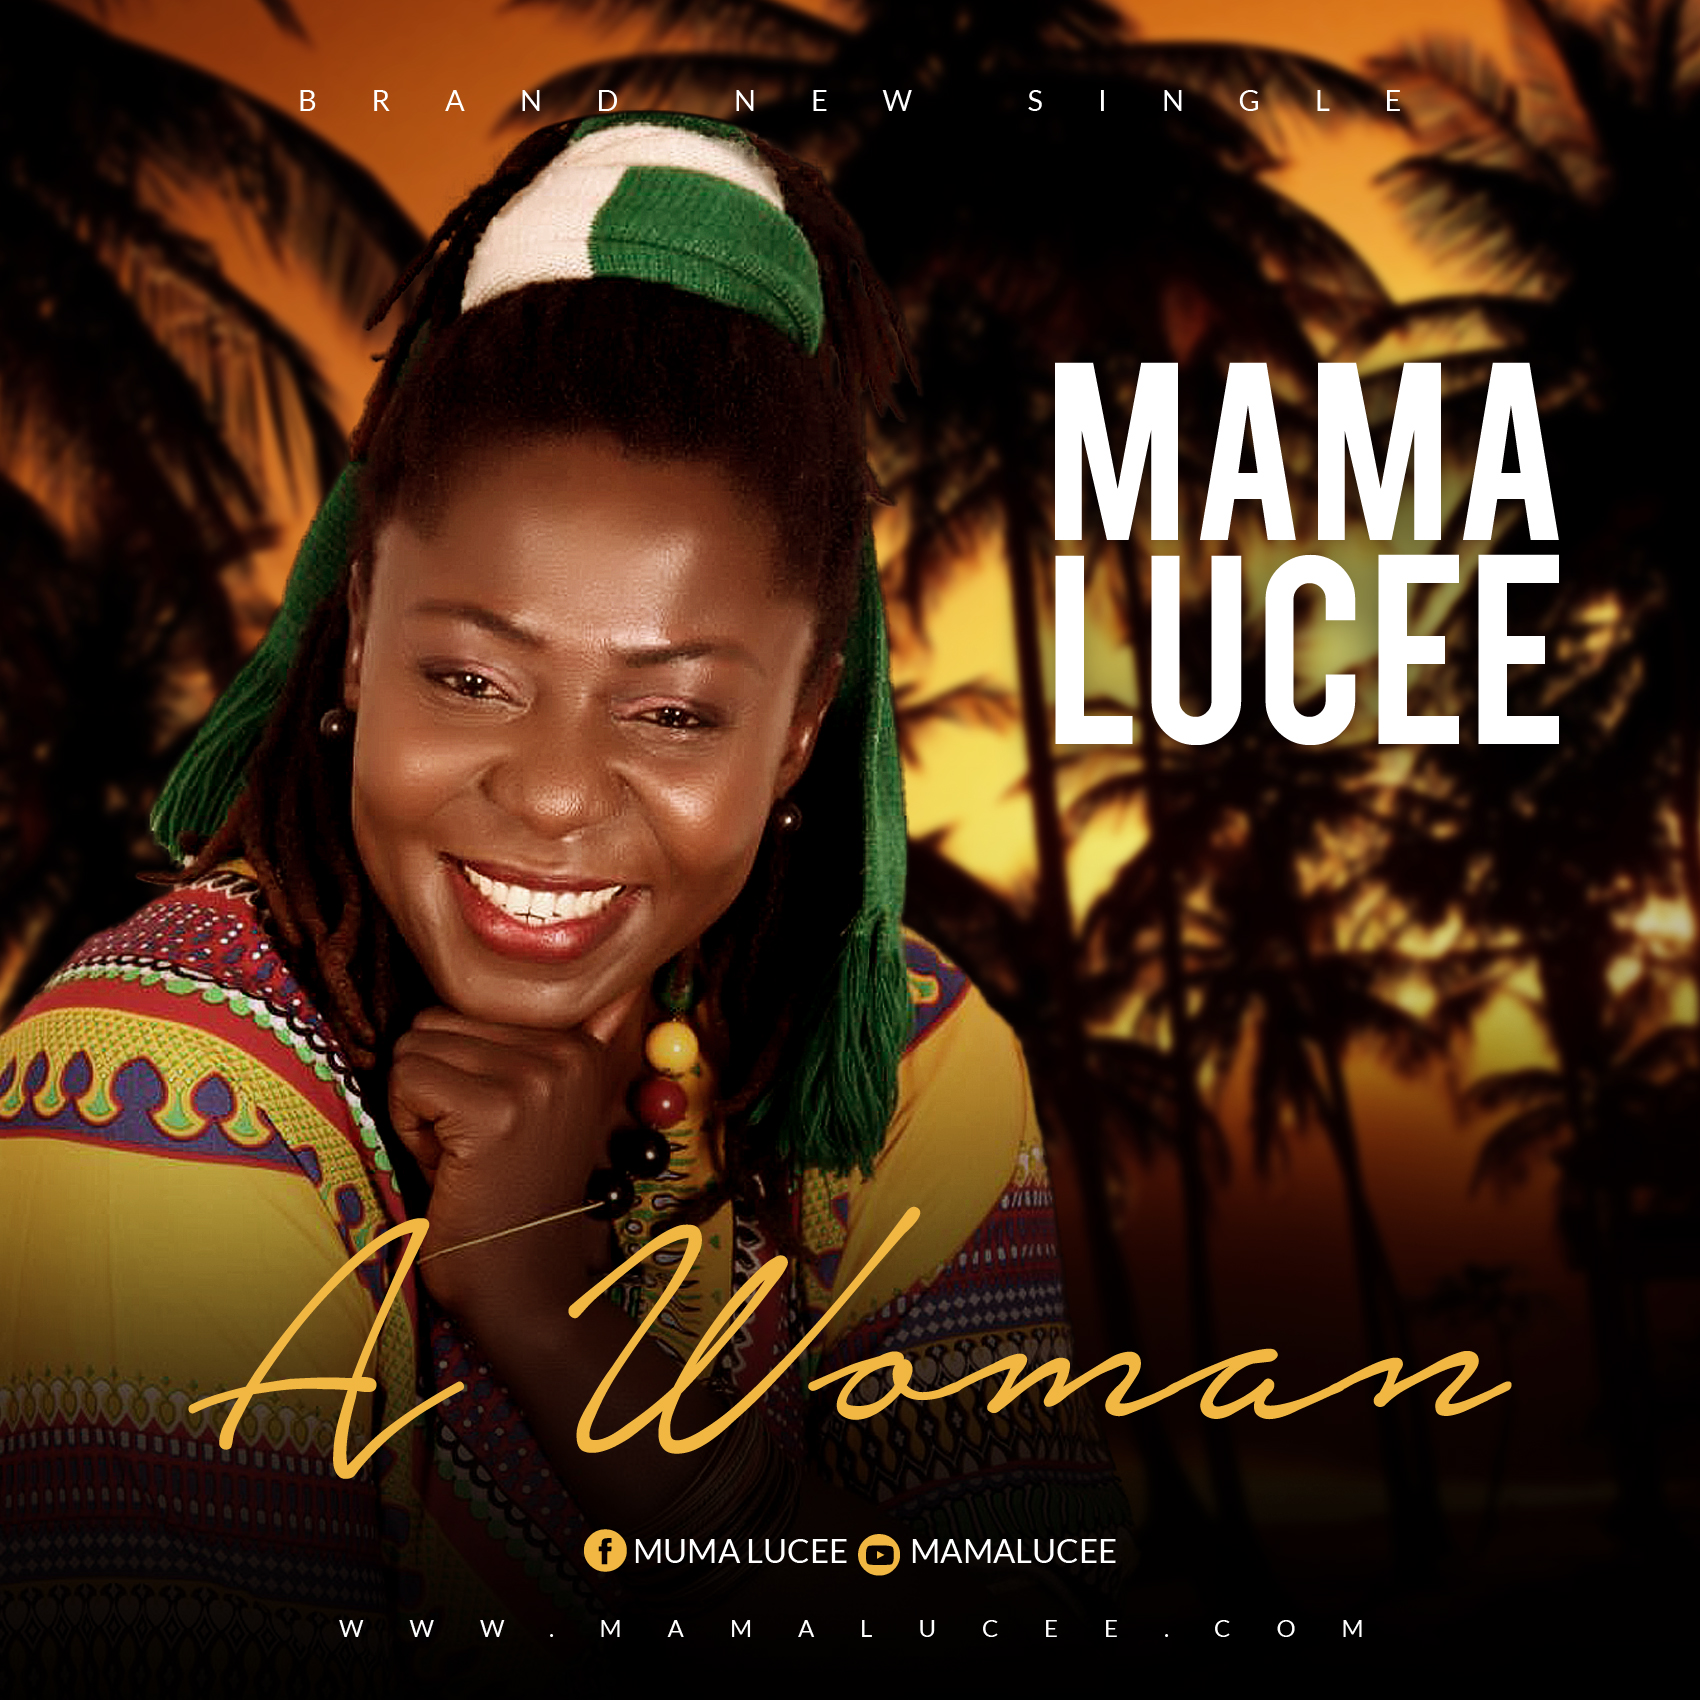 A Woman by Mama Lucee